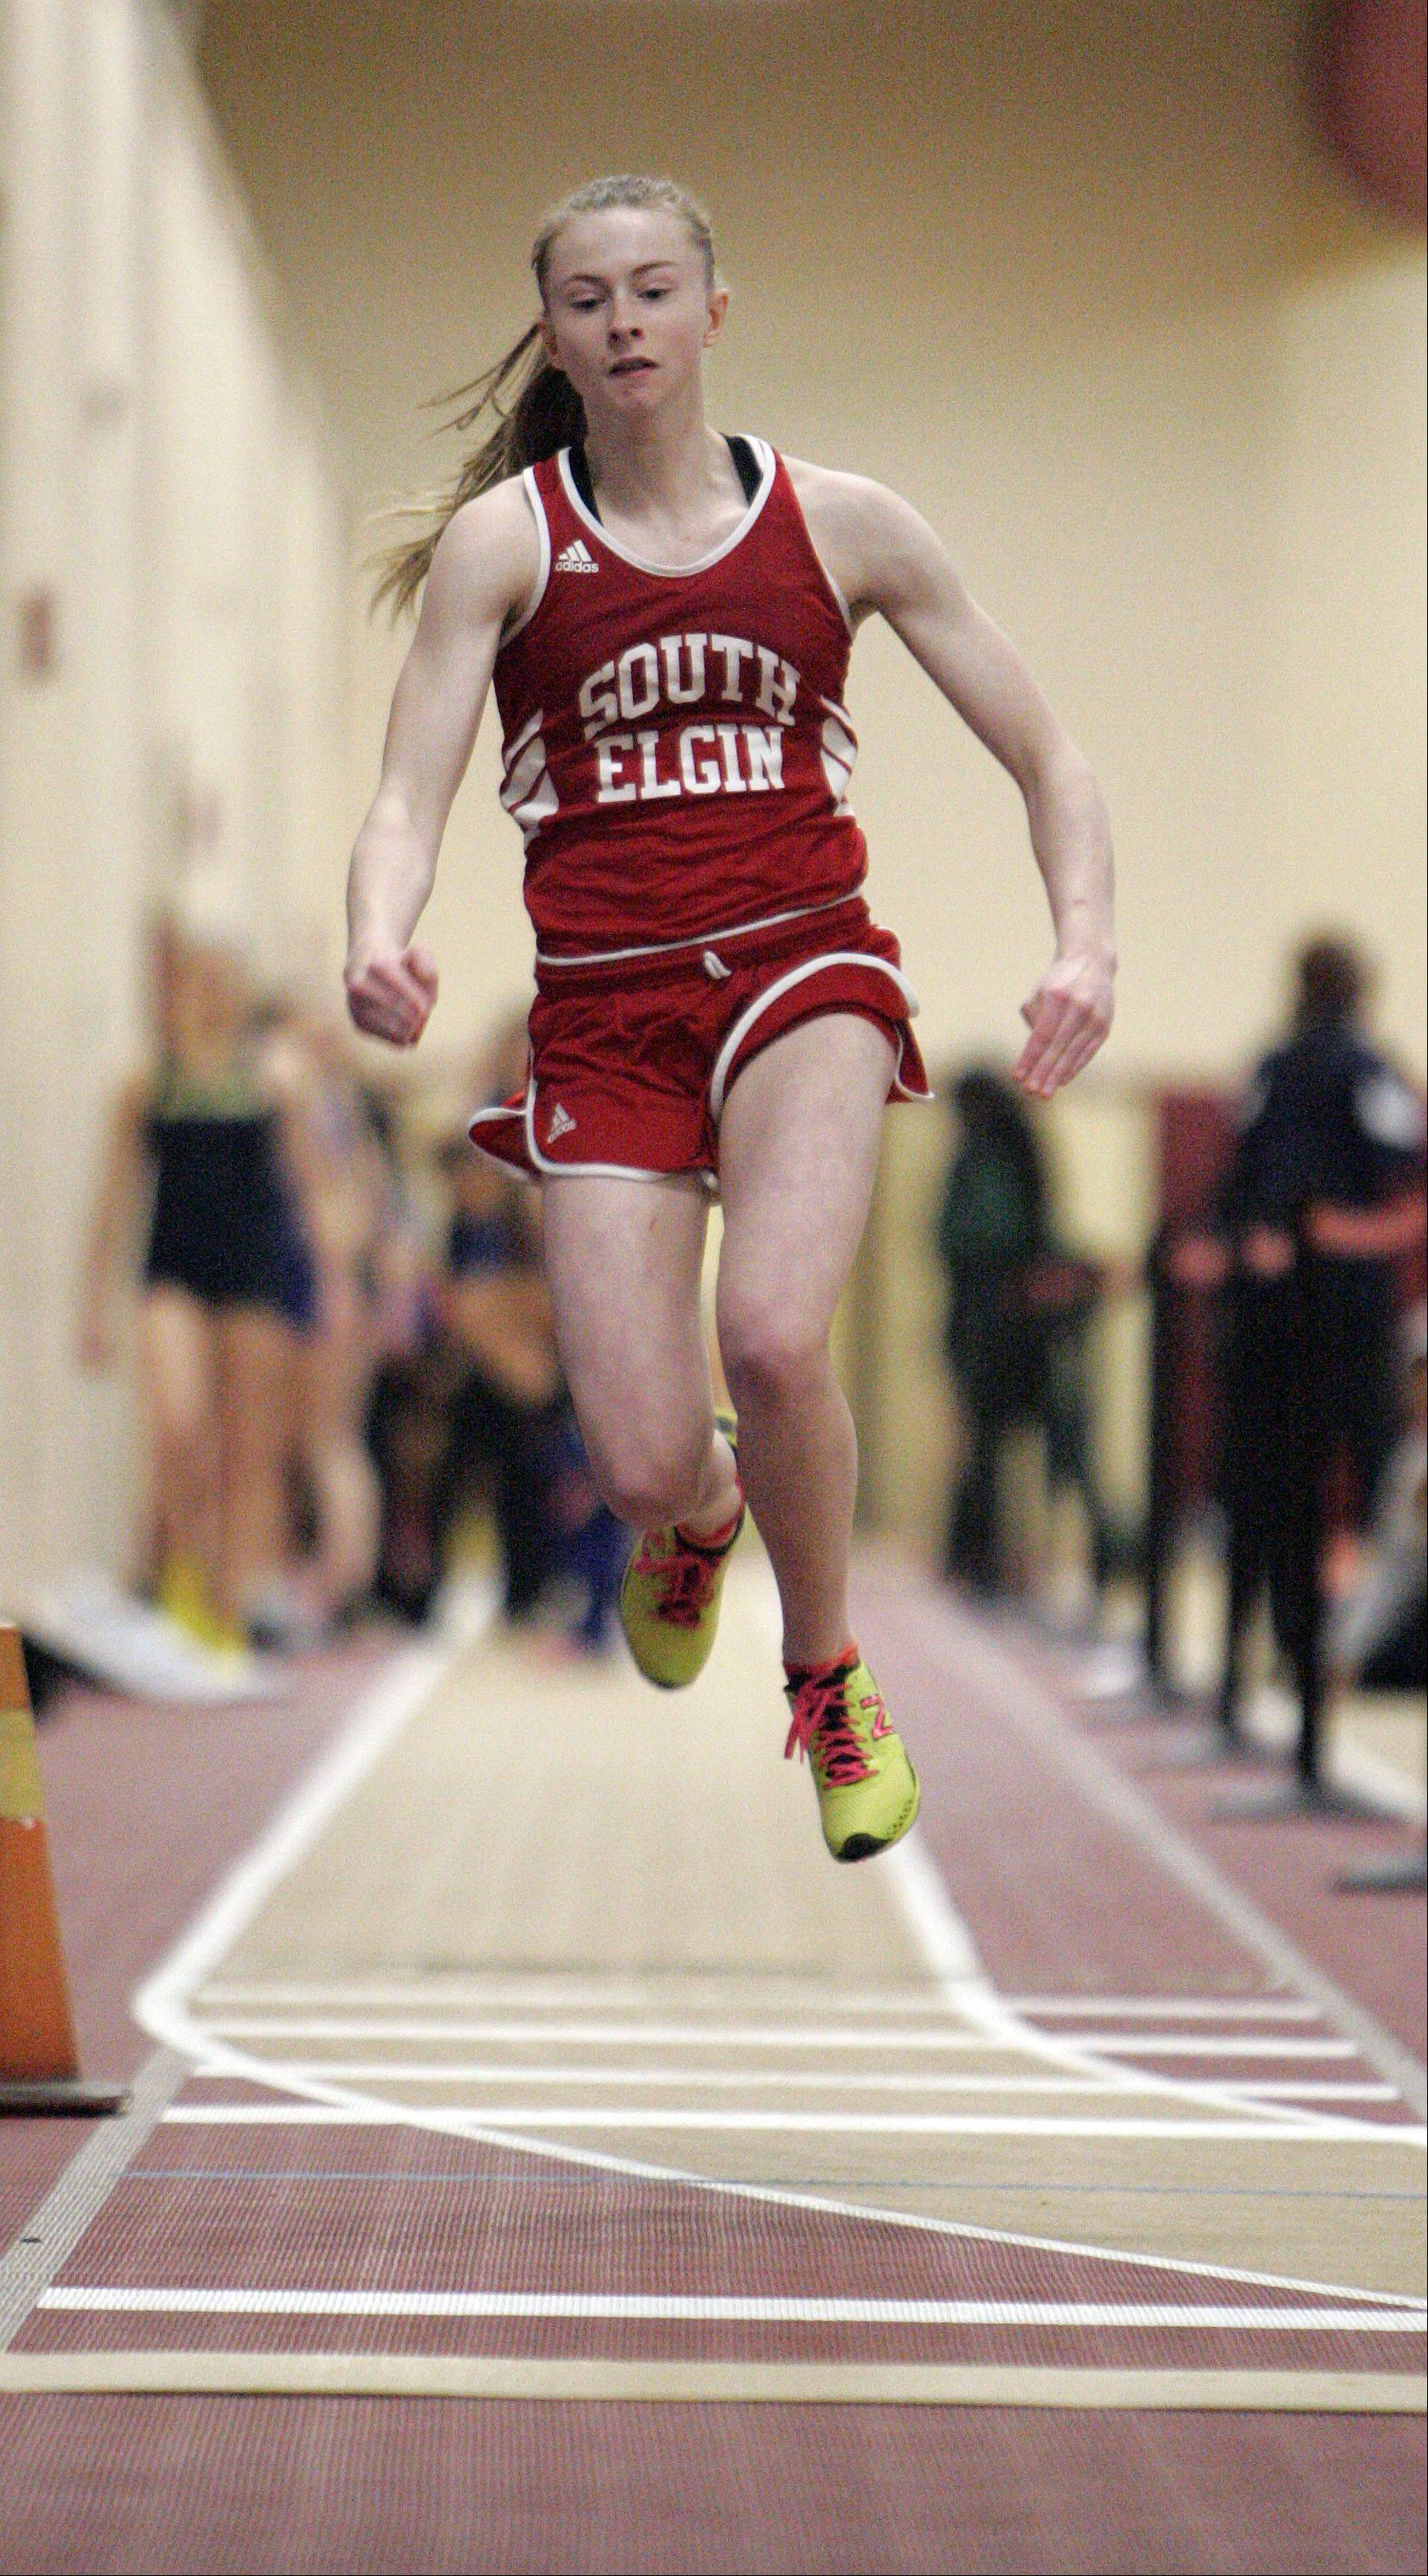 Emalee Smith of South Elgin in the triple jump during the Upstate Eight Conference indoor track meet at Batavia High School Friday.